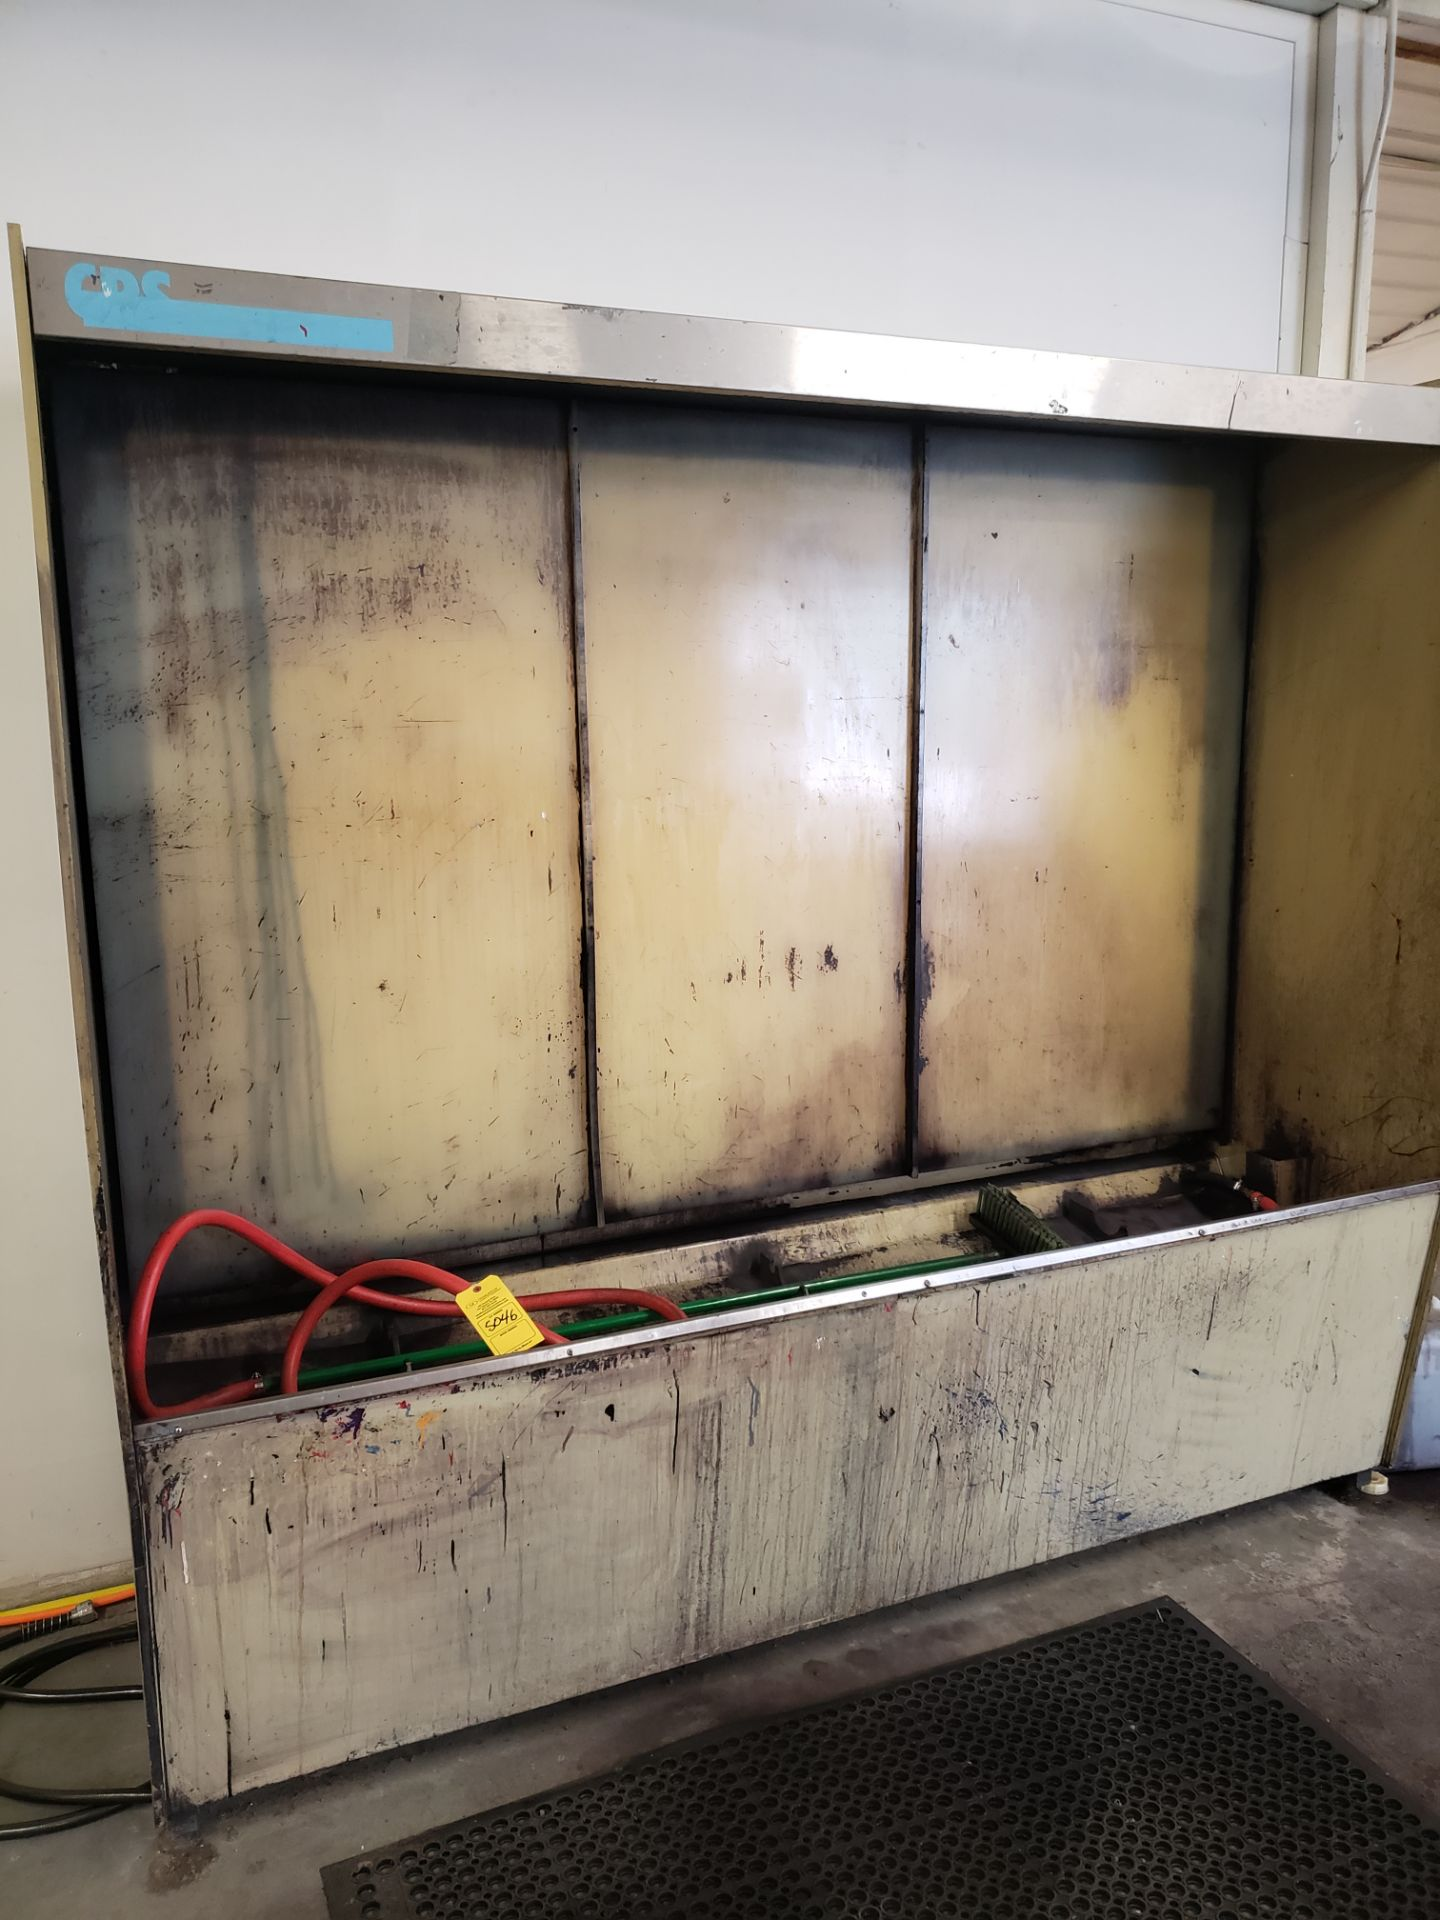 Lot 5046 - CPS WASH SYSTEM (LOCATED AT: 16335 LIMA ROAD BLDG. 4 HUNTERTOWN, IN 46748)